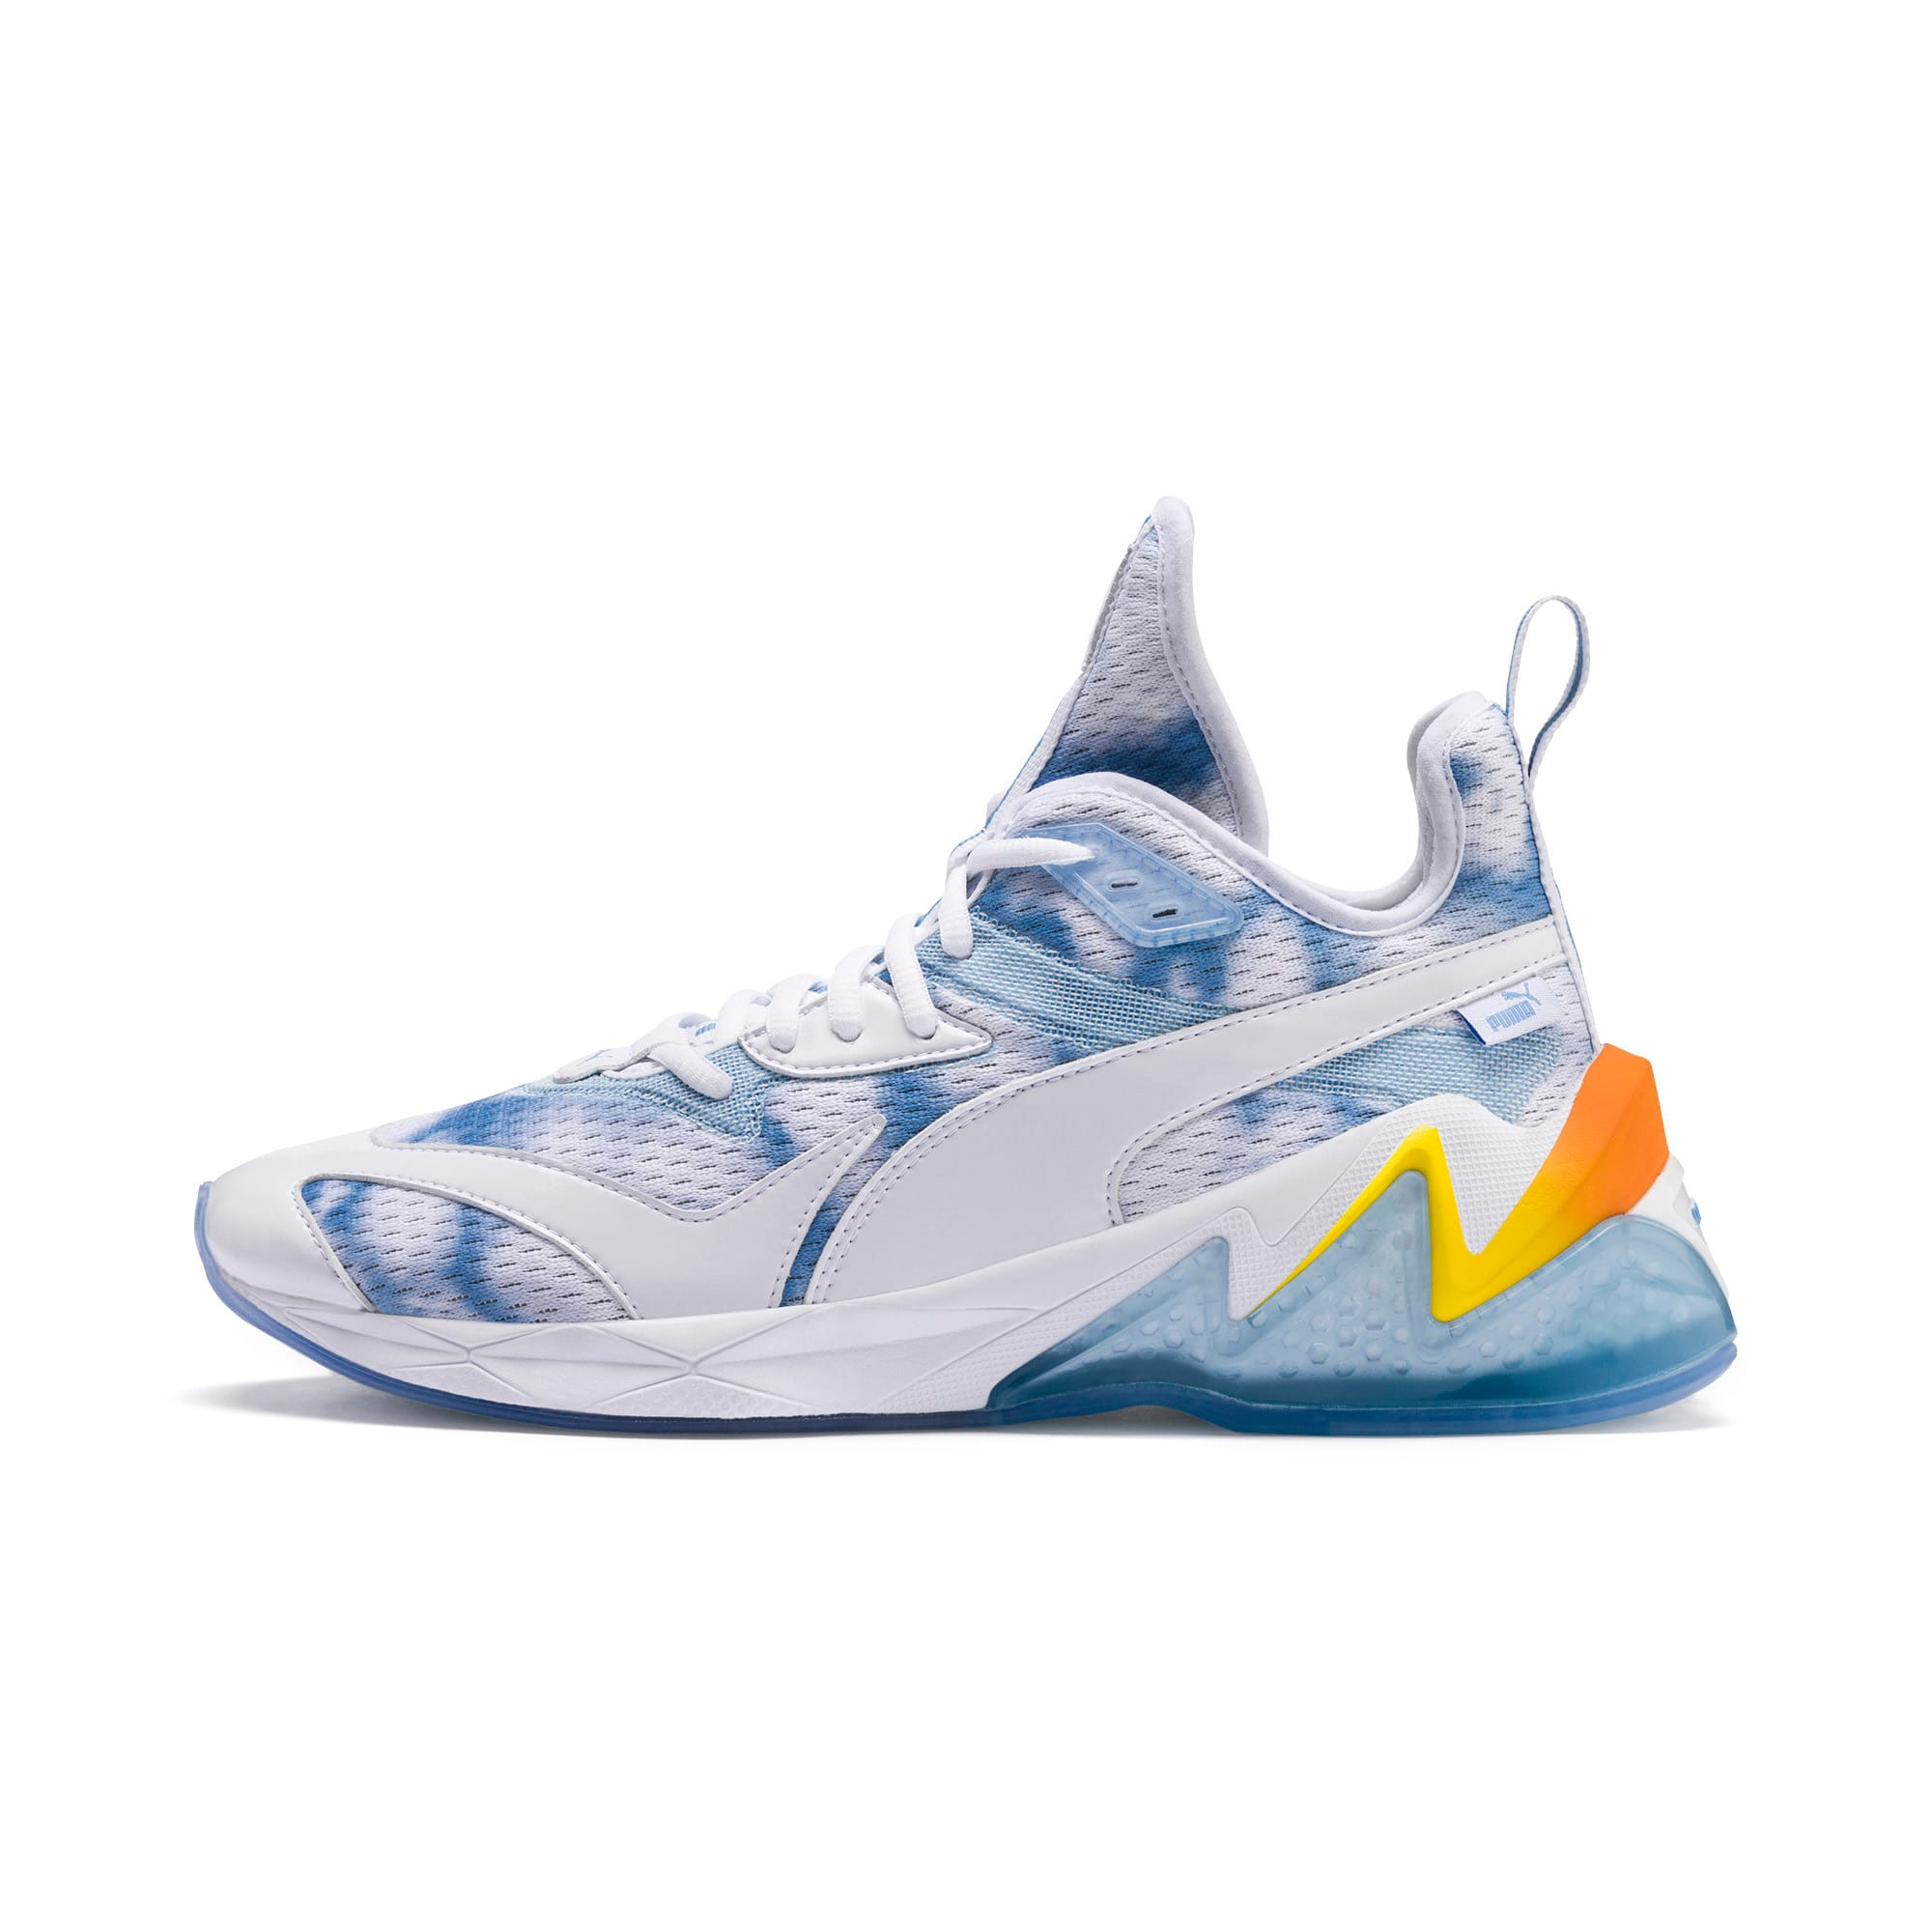 Thumbnail 1 of LQDCELL Origin Drone Day Men's Shoes, Puma White-Blazing Yellow, medium